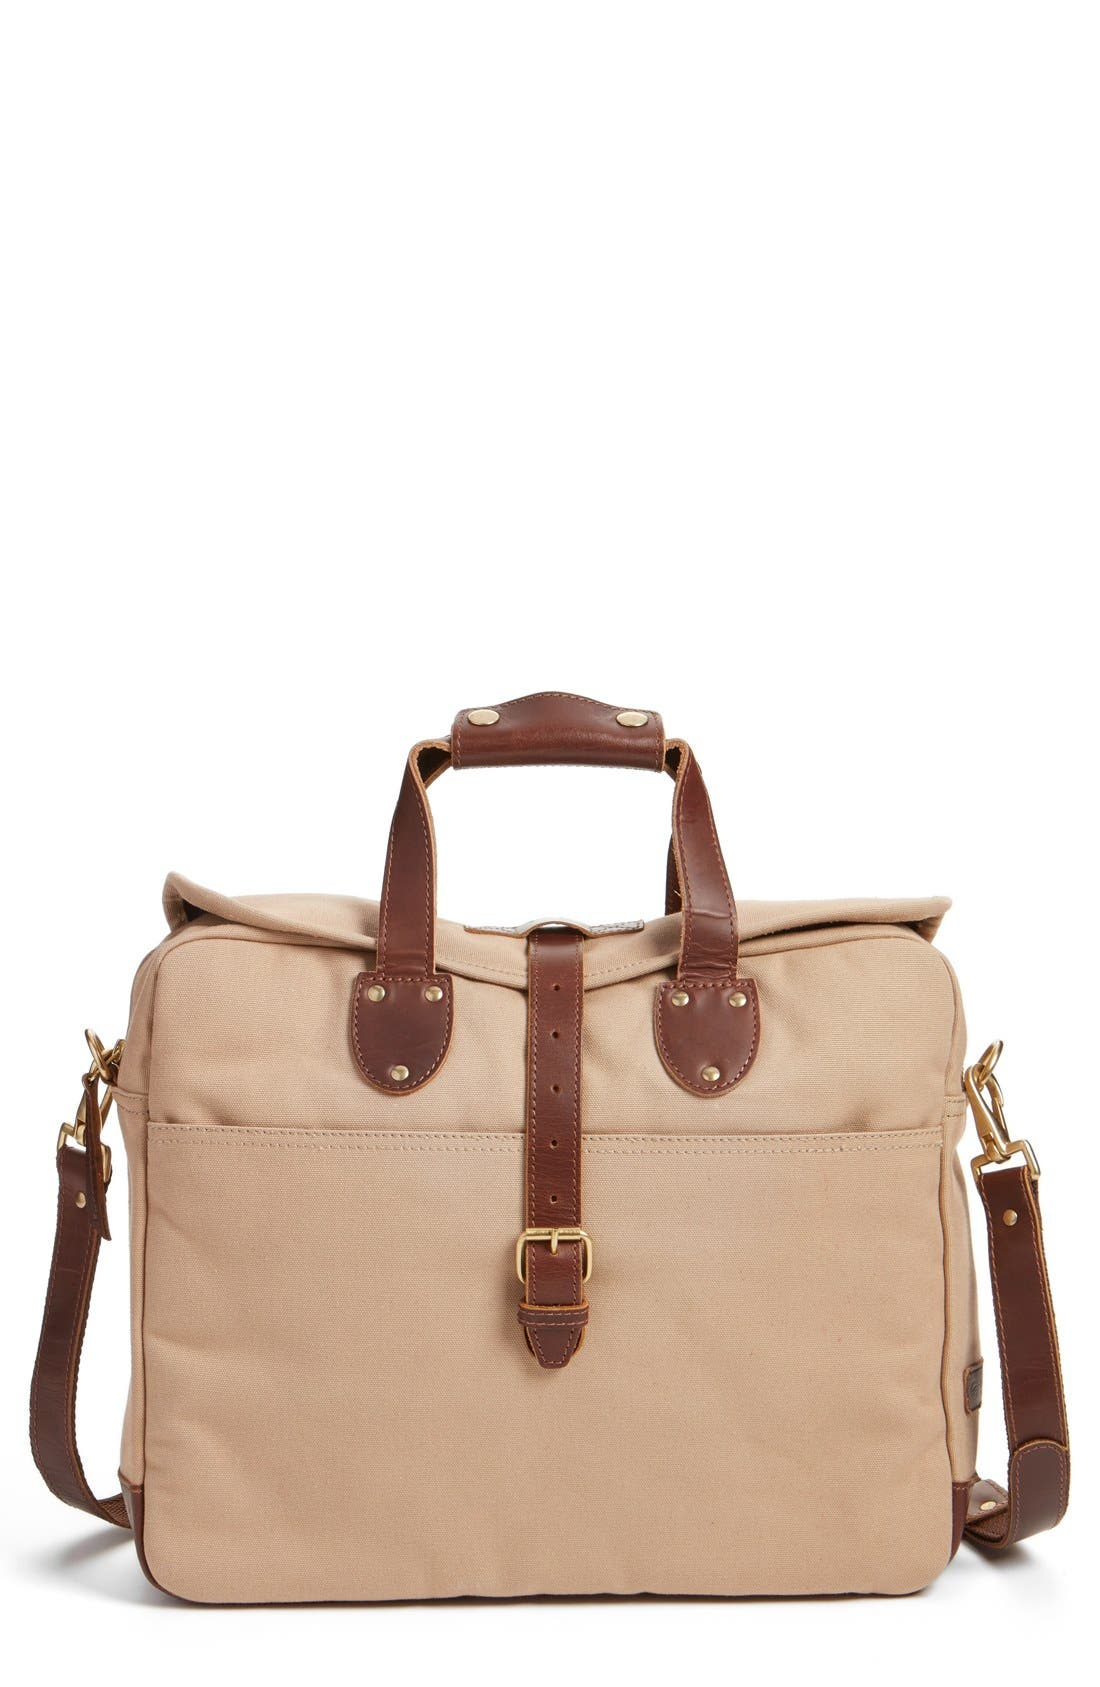 'Lakeland' Laptop Bag,                             Main thumbnail 1, color,                             TAN